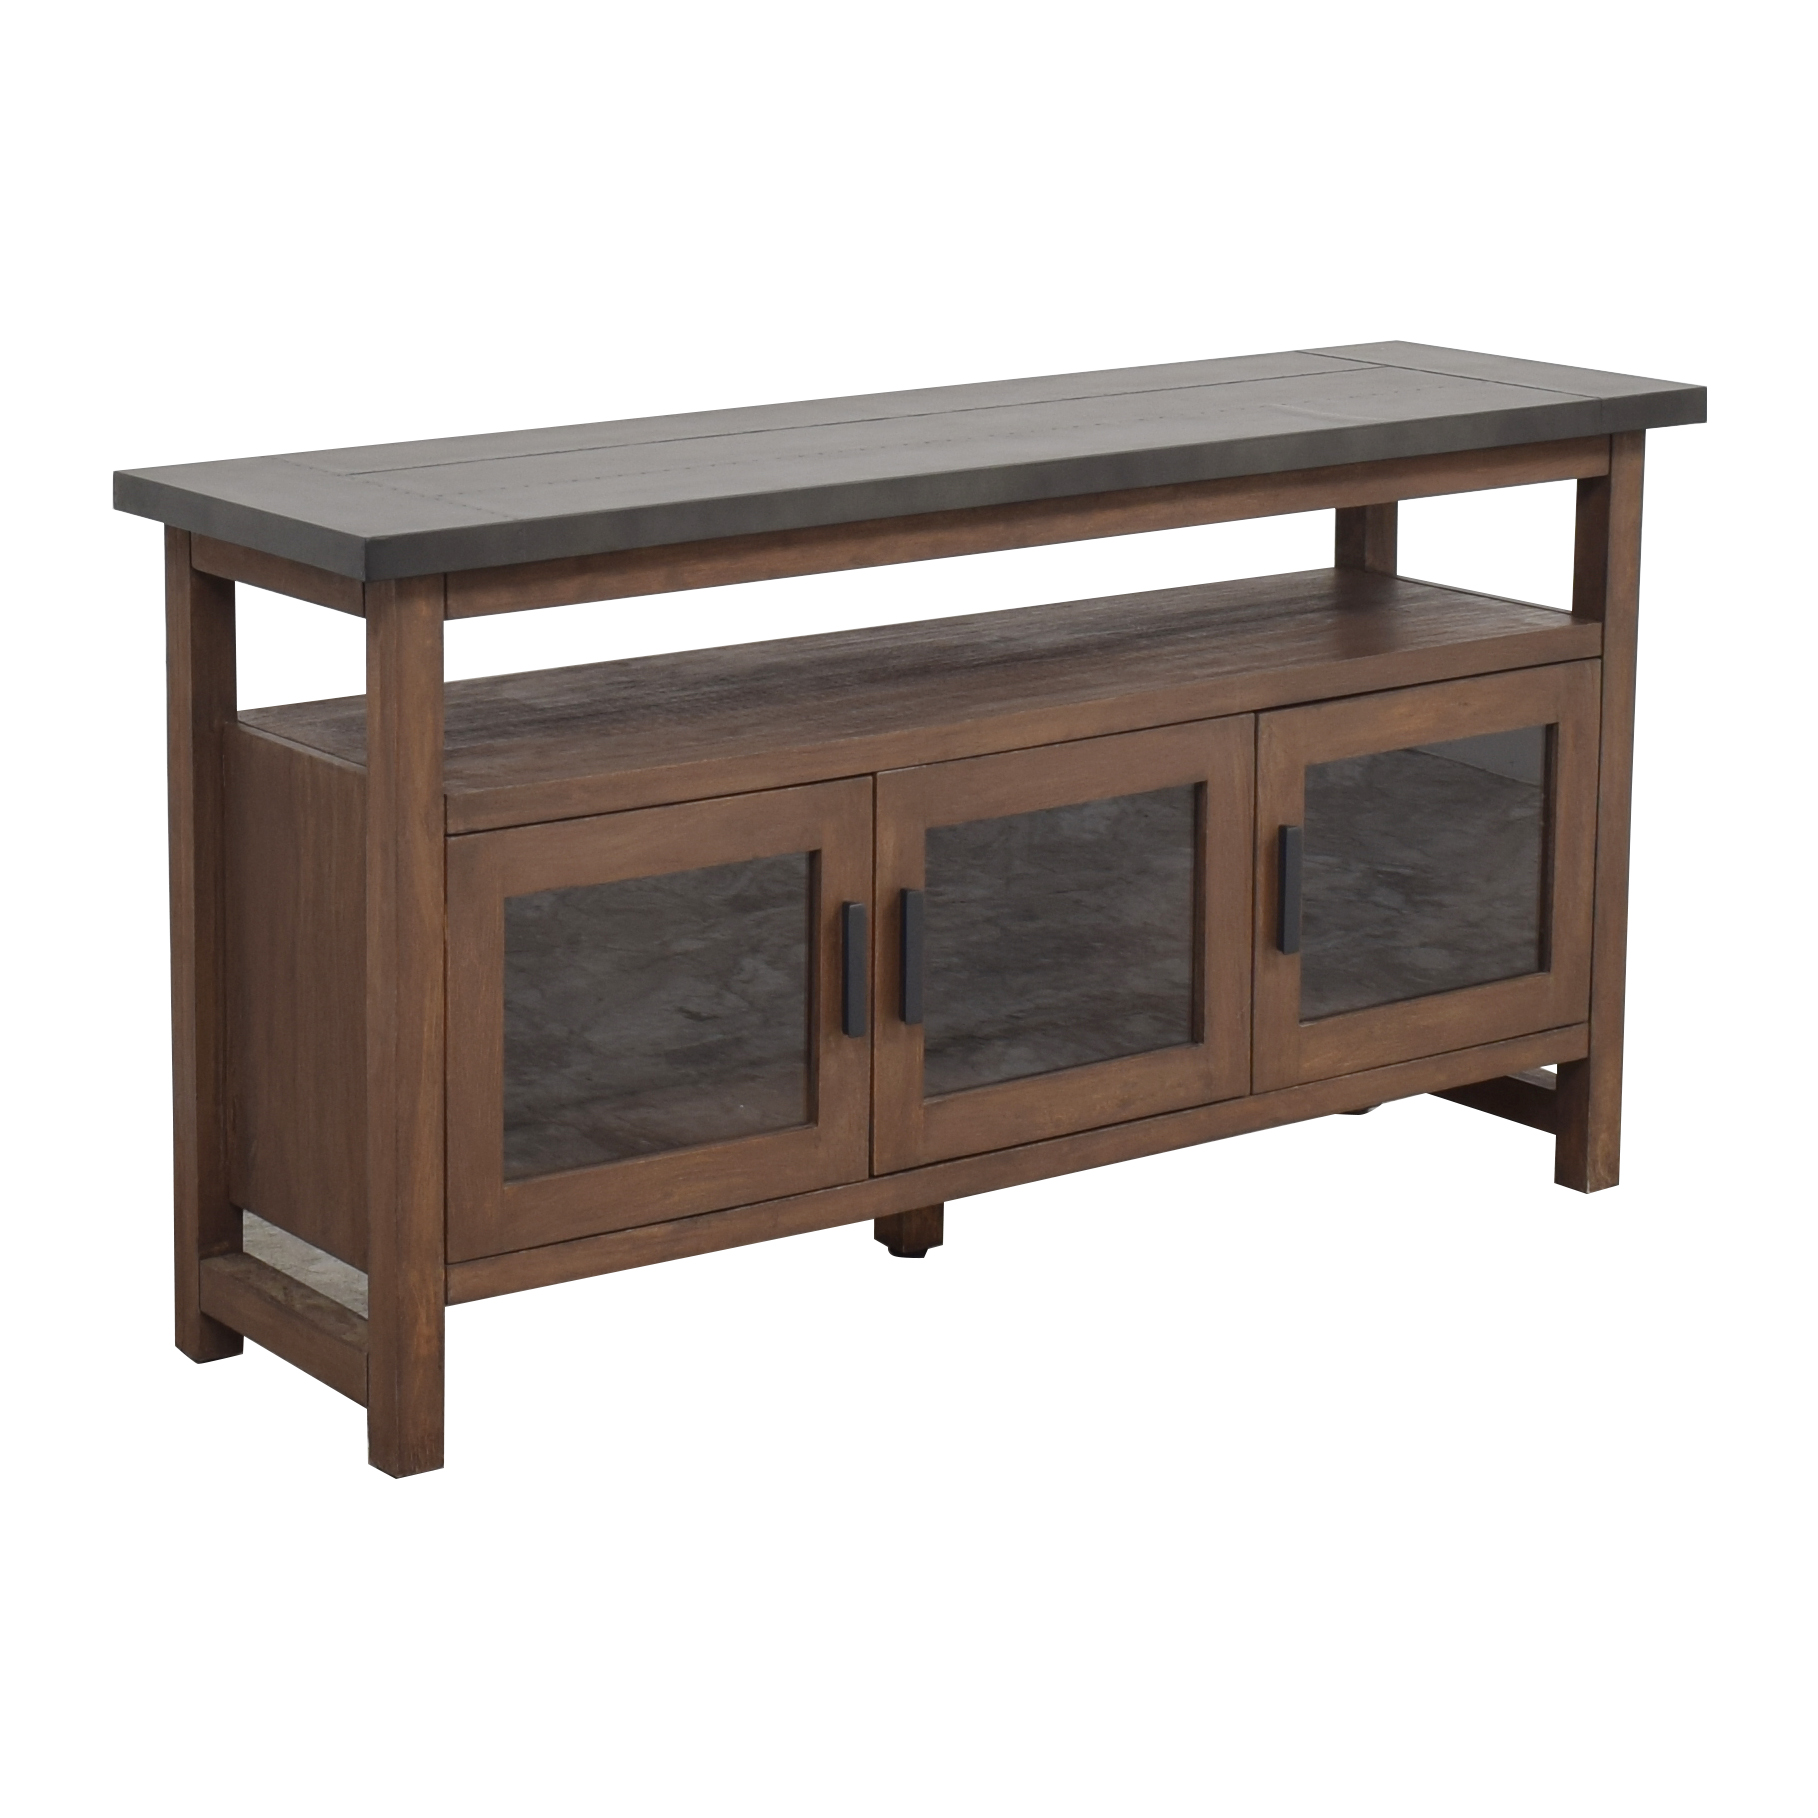 Crate & Barrel Crate & Barrel Galvin Sideboard nj